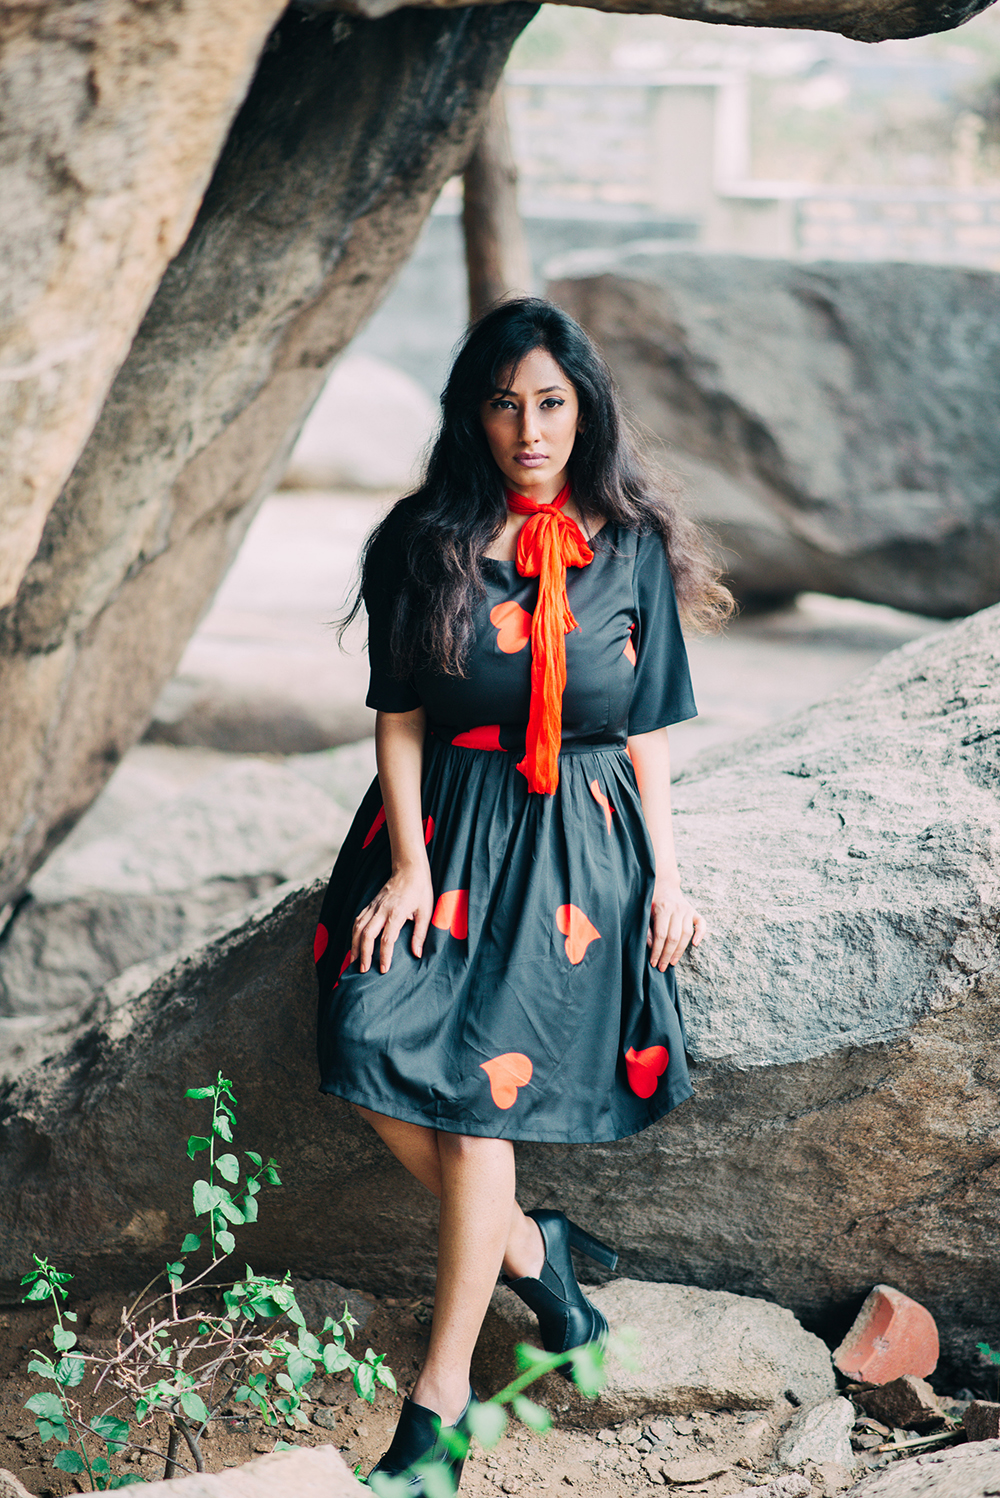 Lookbook ; Heart Print Dress ; Red scarf ; Outfit ; black Booties ; fashion photography ; valentines day look ; date outfit ; Roving Mode ; dusk ; editorial ; strong ; Dark ; summer fashion ; summer outfit ; spring ; summer 17 ; Naznin ; Naznin Suhaer ; dusky; model ; indian blogger ; hyderabad fashion bloggers ; hyderabad bloggers ; hyderabad fashion blogger ; I Dress for the Applause ;